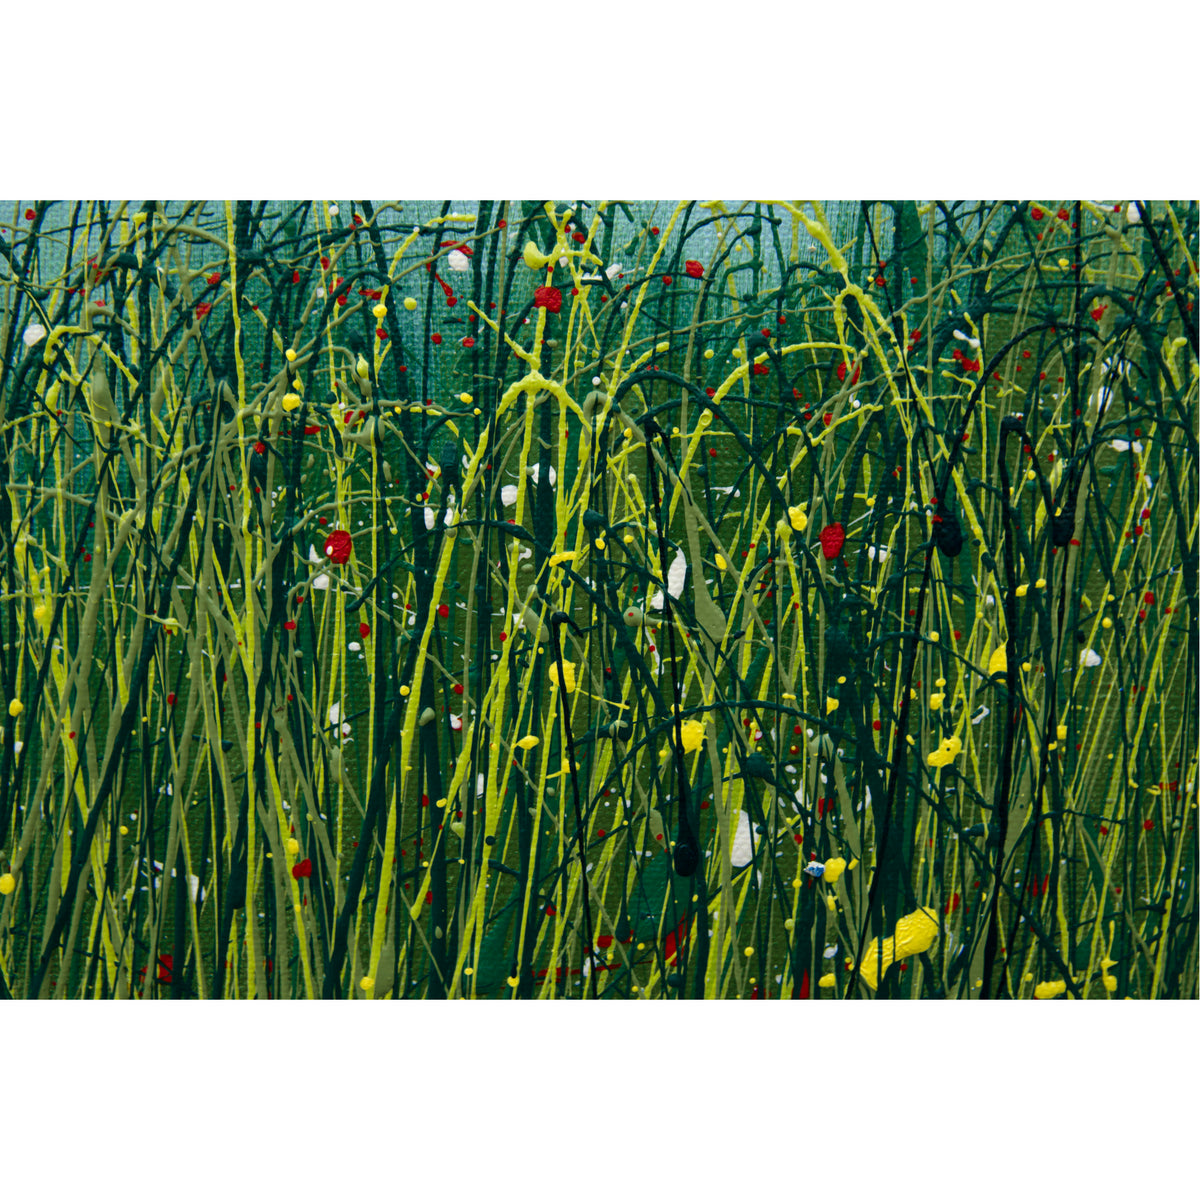 forgive, Royden Astrop, British artist, painter, wild grasses, grass painting, oil painting